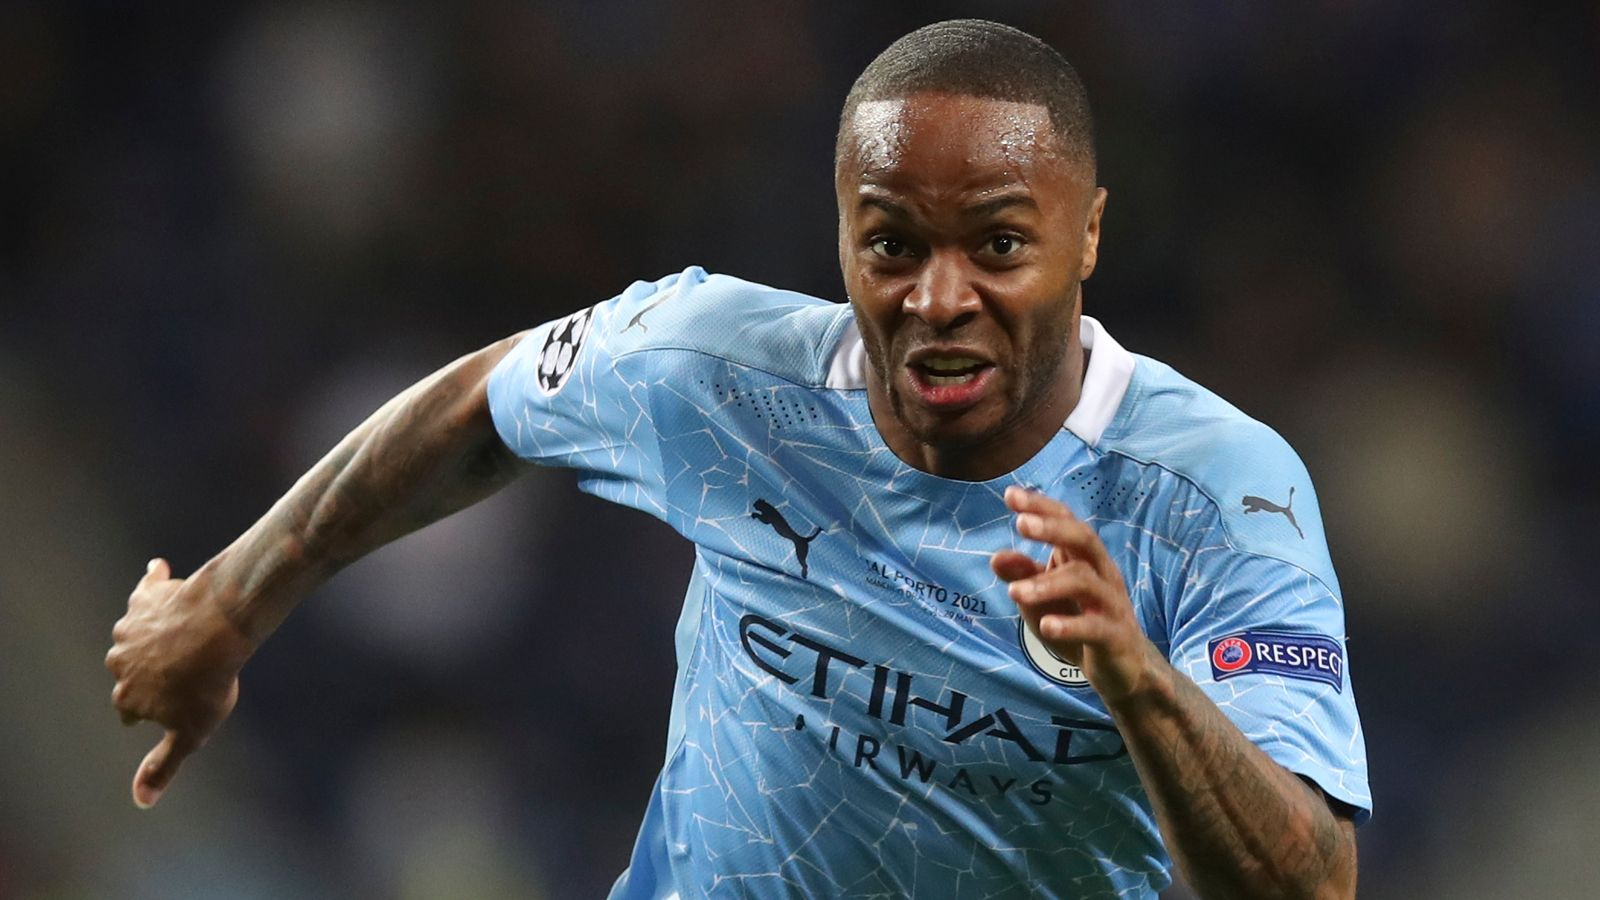 Raheem Sterling and Kyle Walker racially abused online after Man City's Champions League final defeat by Chelsea